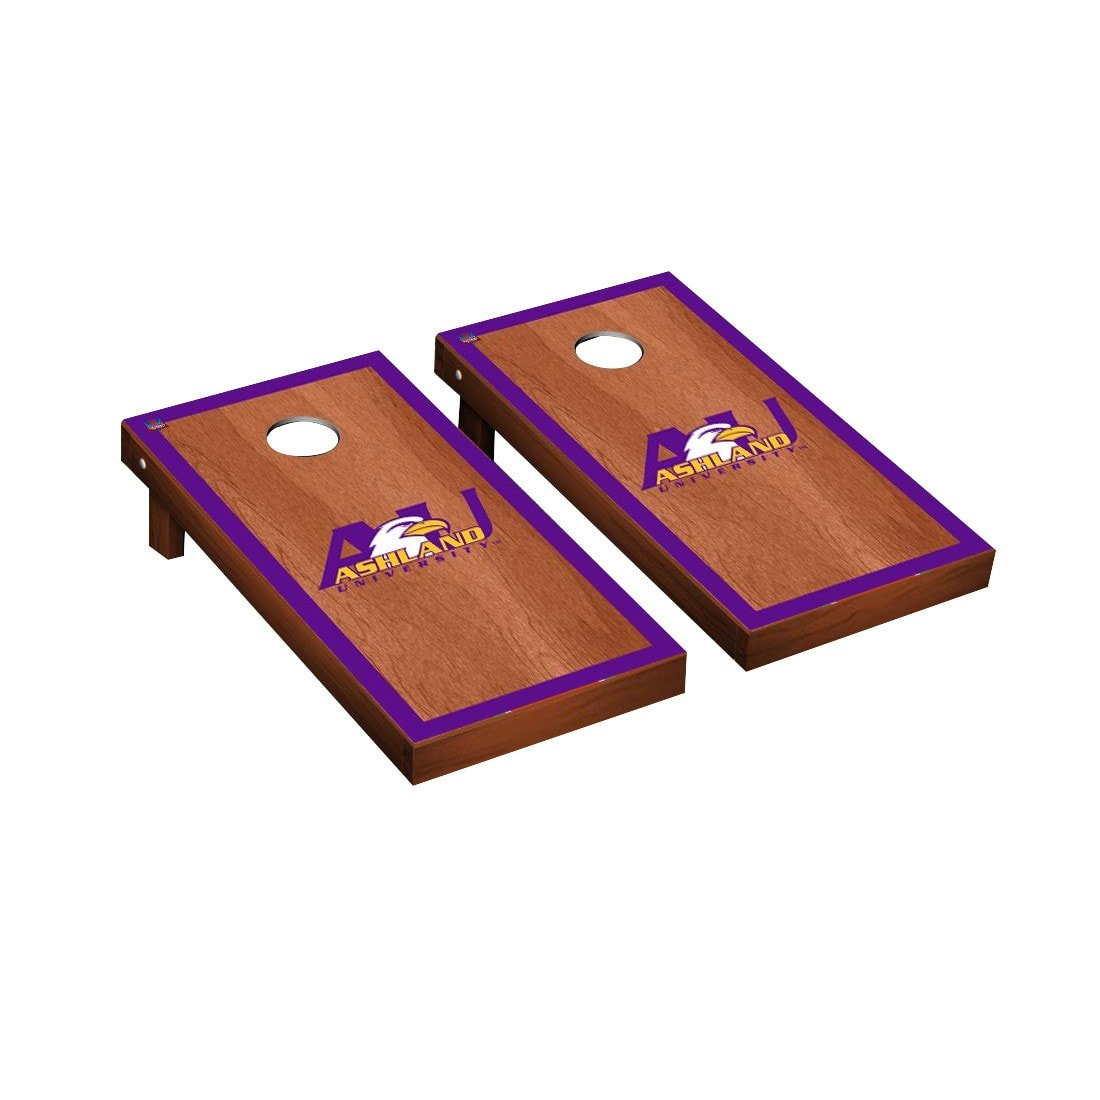 Victory Tailgate Ashland Eagles Regulation Cornhole Game Set Rosewood Stained Border Version